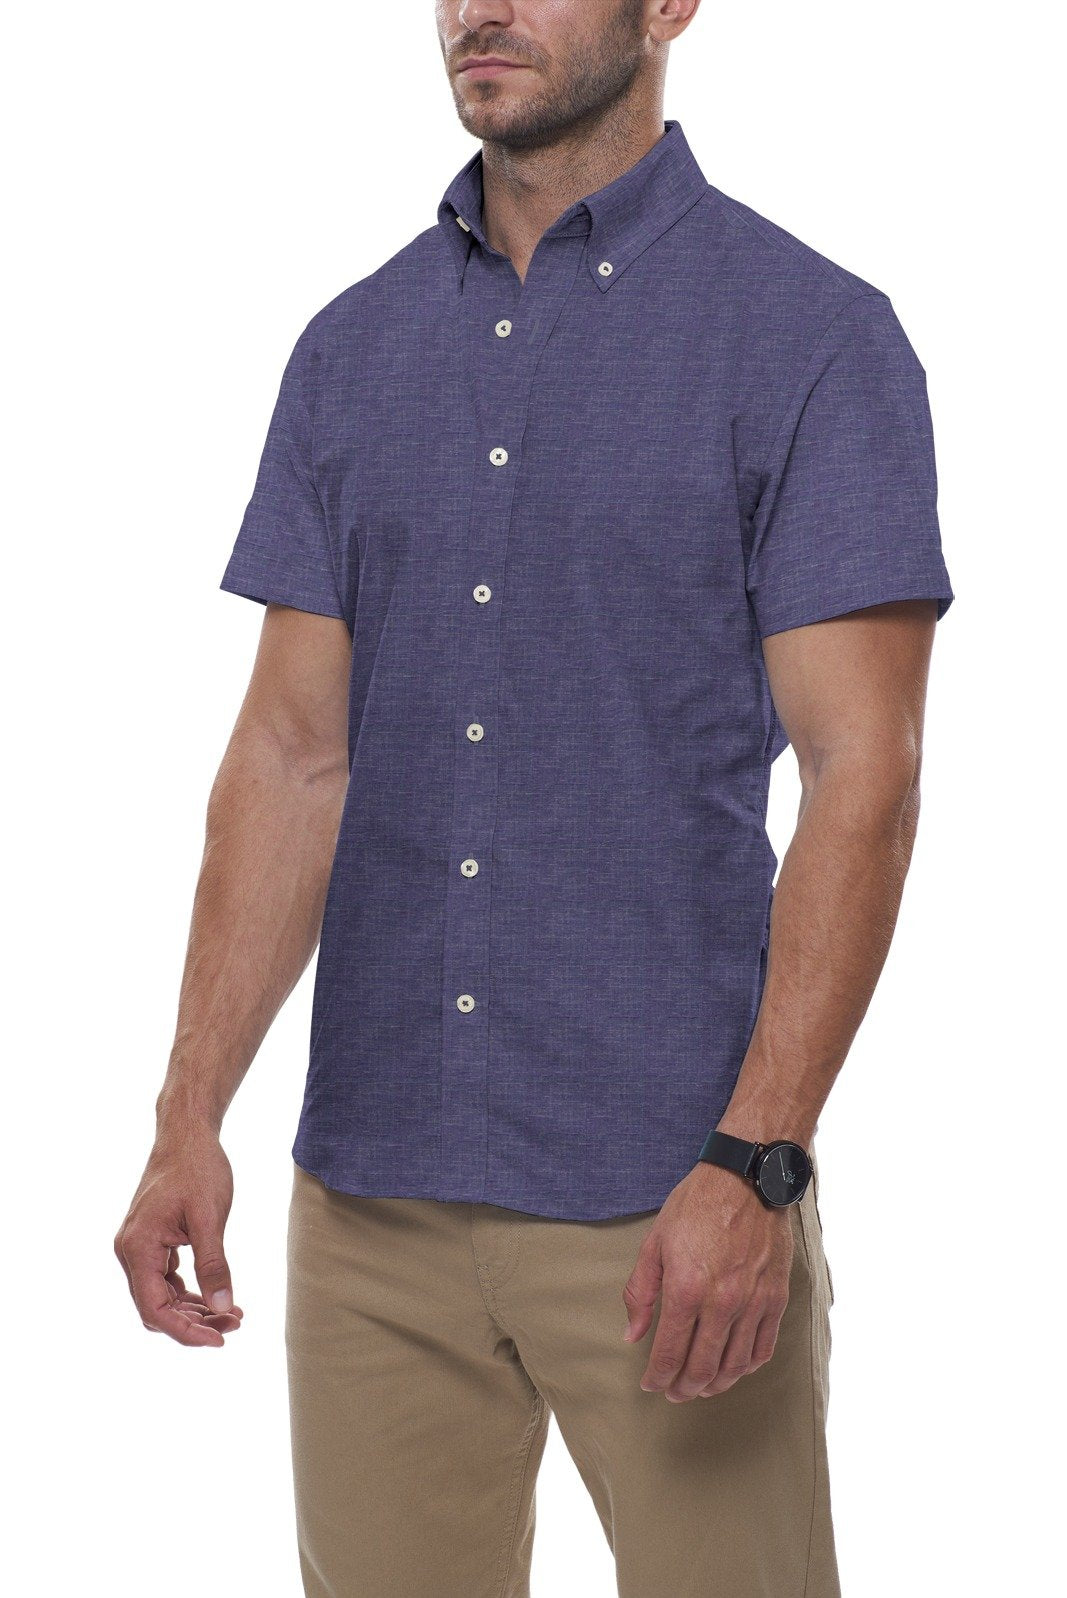 Indigo Summer Linen: Button-Down Collar, Short Sleeve